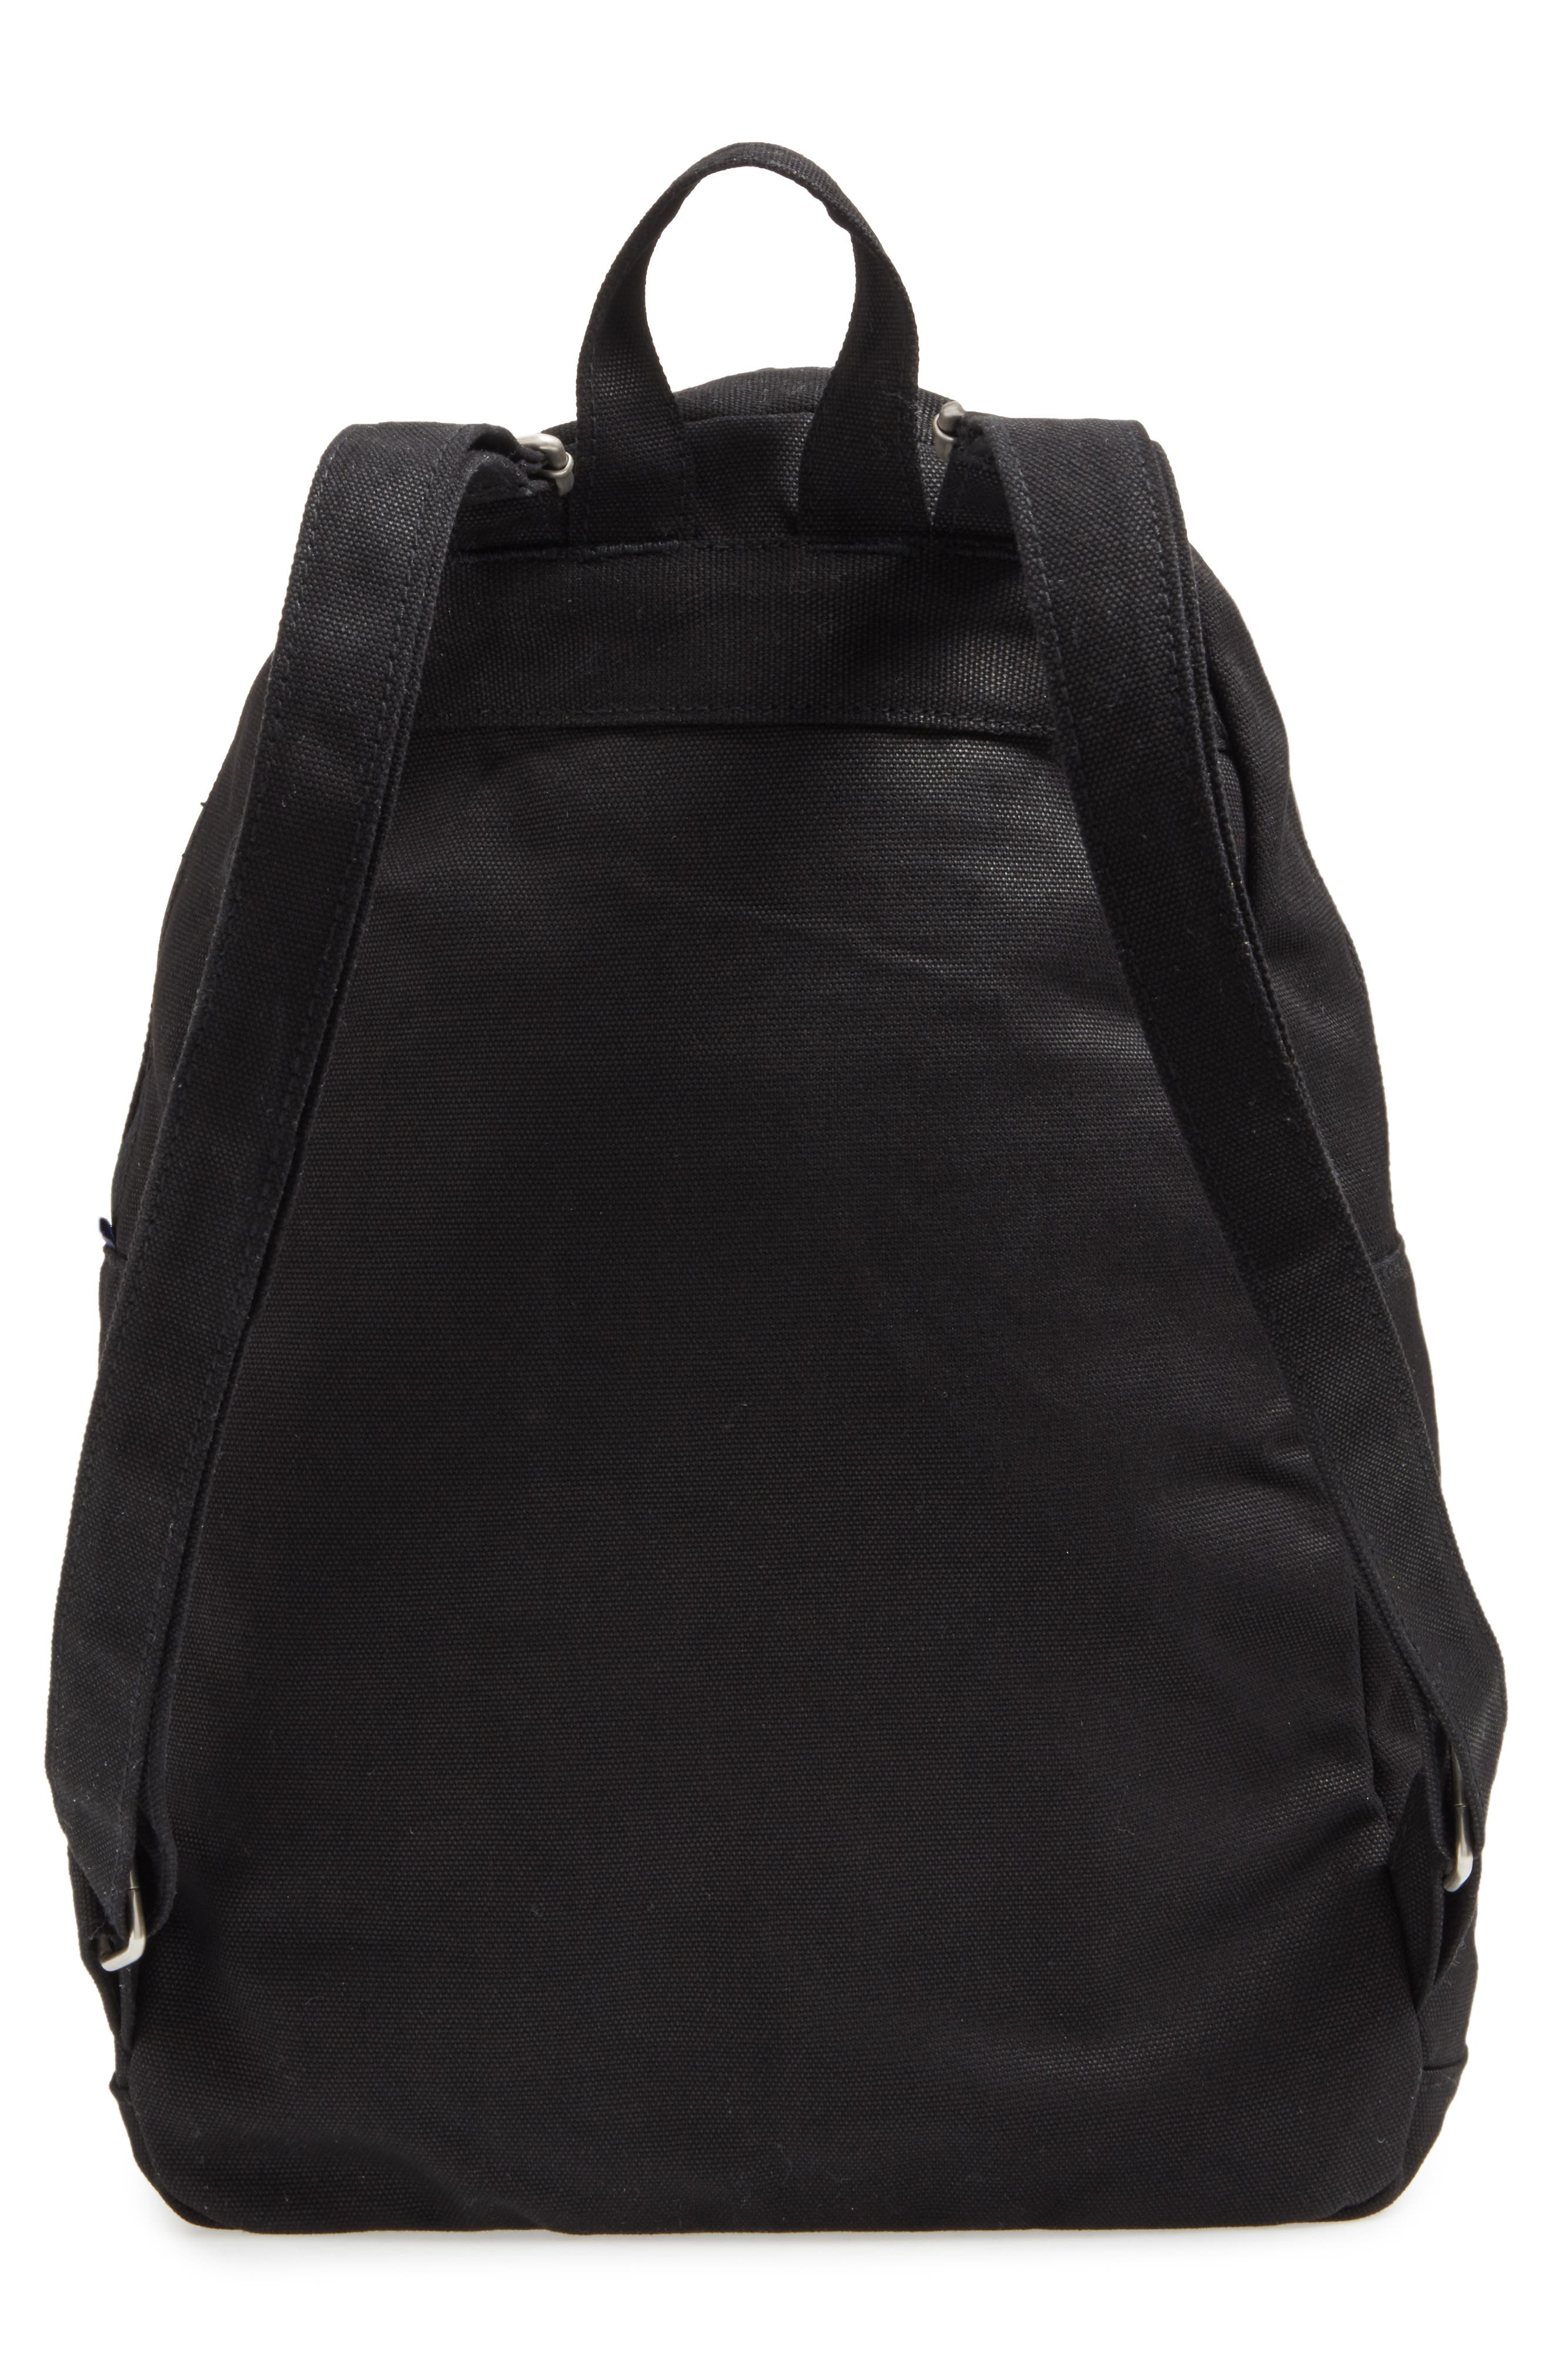 Canvas Backpack,                             Alternate thumbnail 3, color,                             001